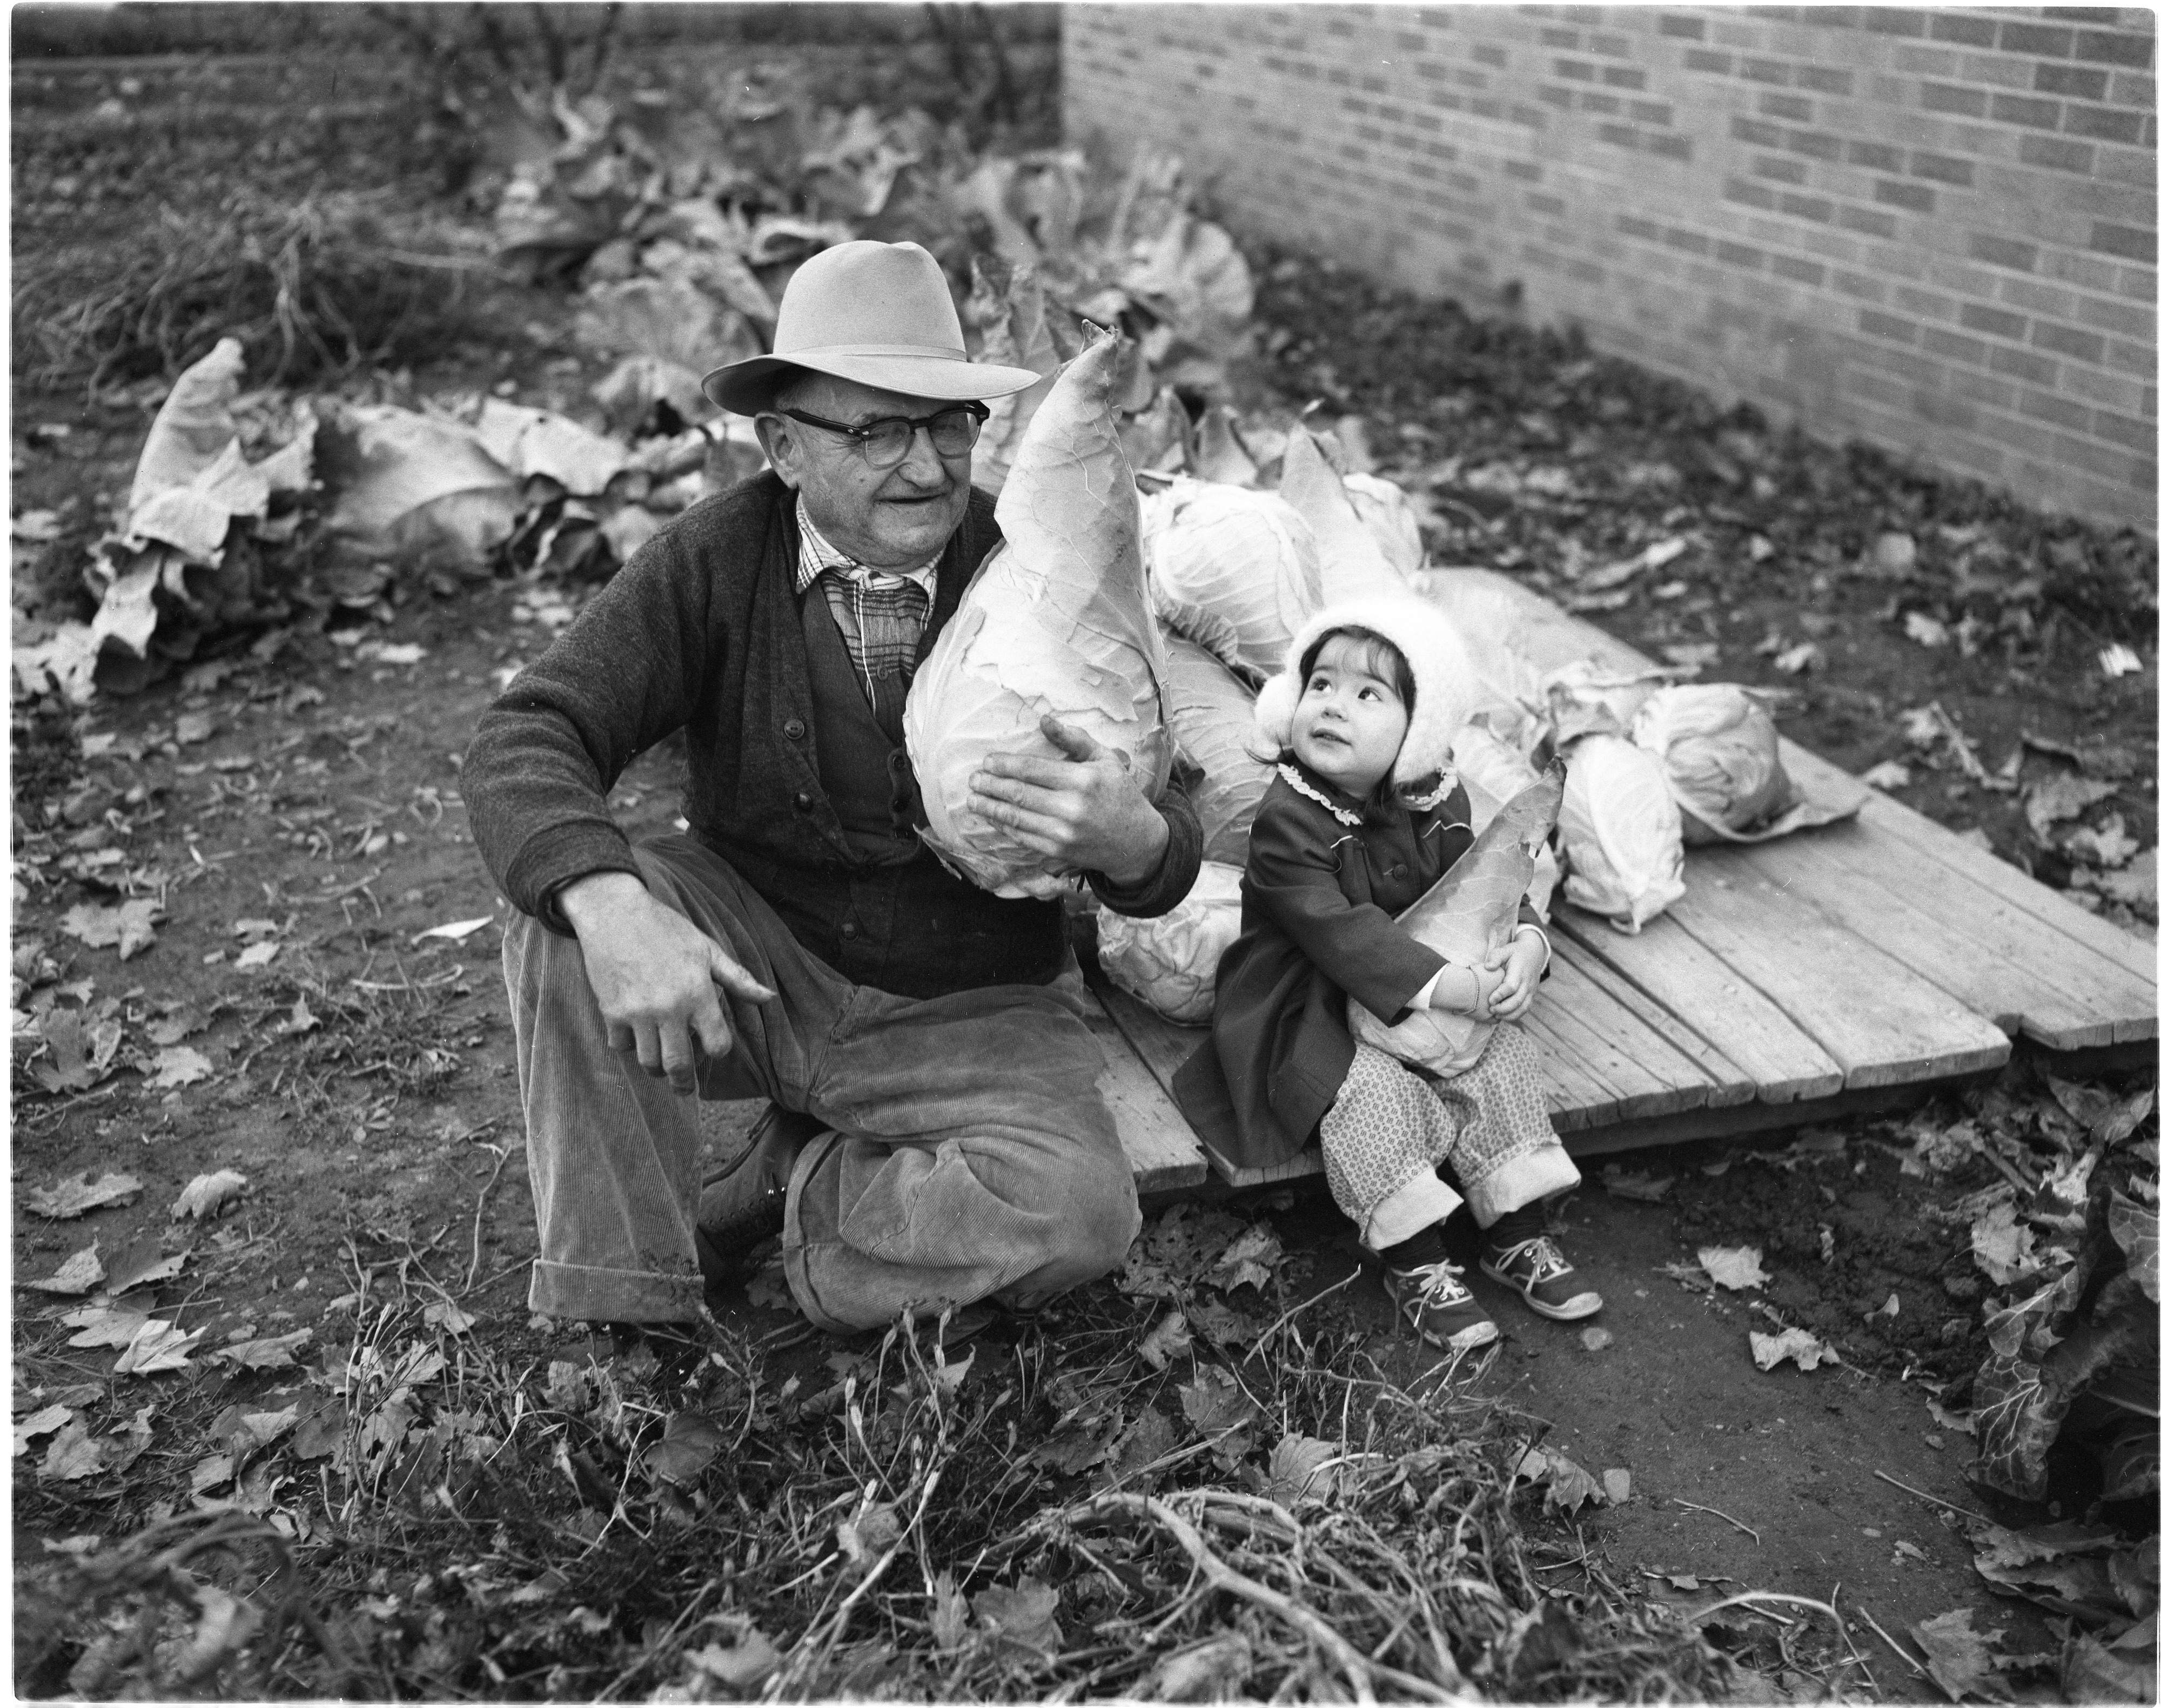 J. H. Seitz Sr. and Granddaughter Susan Reid with Giant Cabbage, November 1958 image